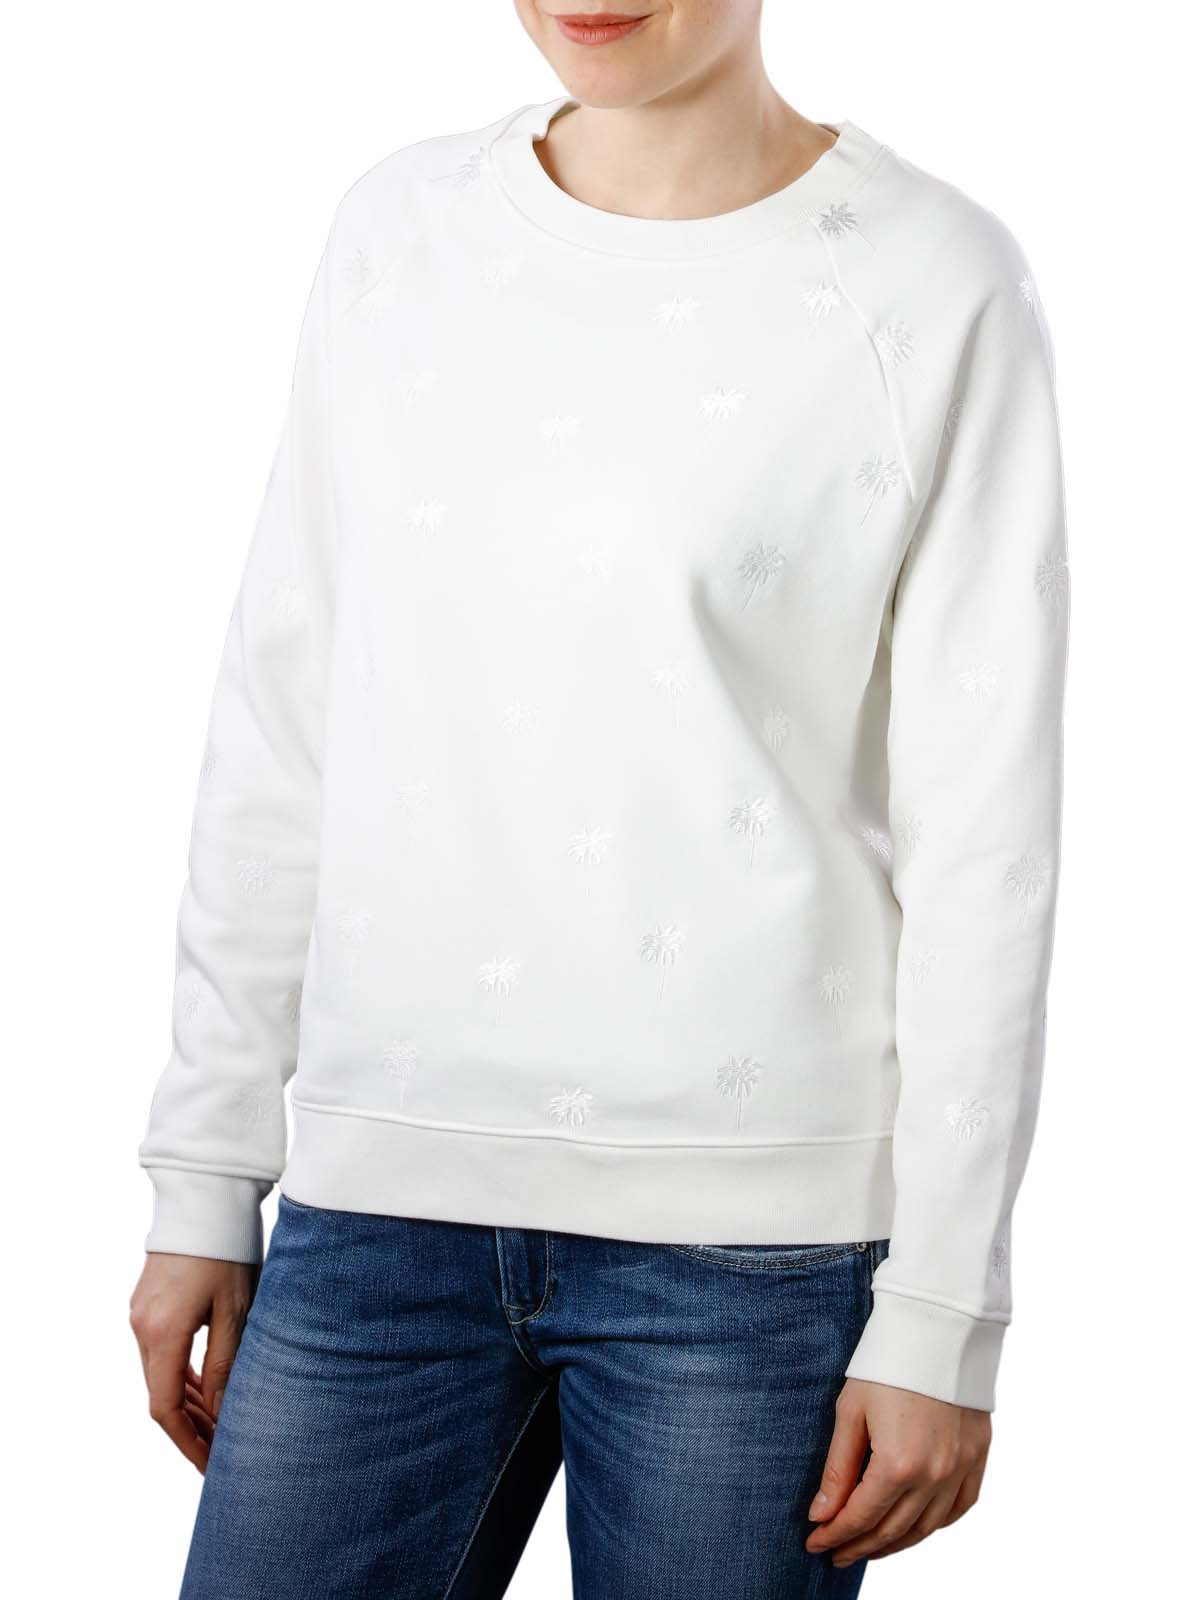 info for a141d 472d4 McJeans.ch - Fast Delivery | Levi's relaxed Classic Crew merced cloud dance  | Free Shipping - Free Returns